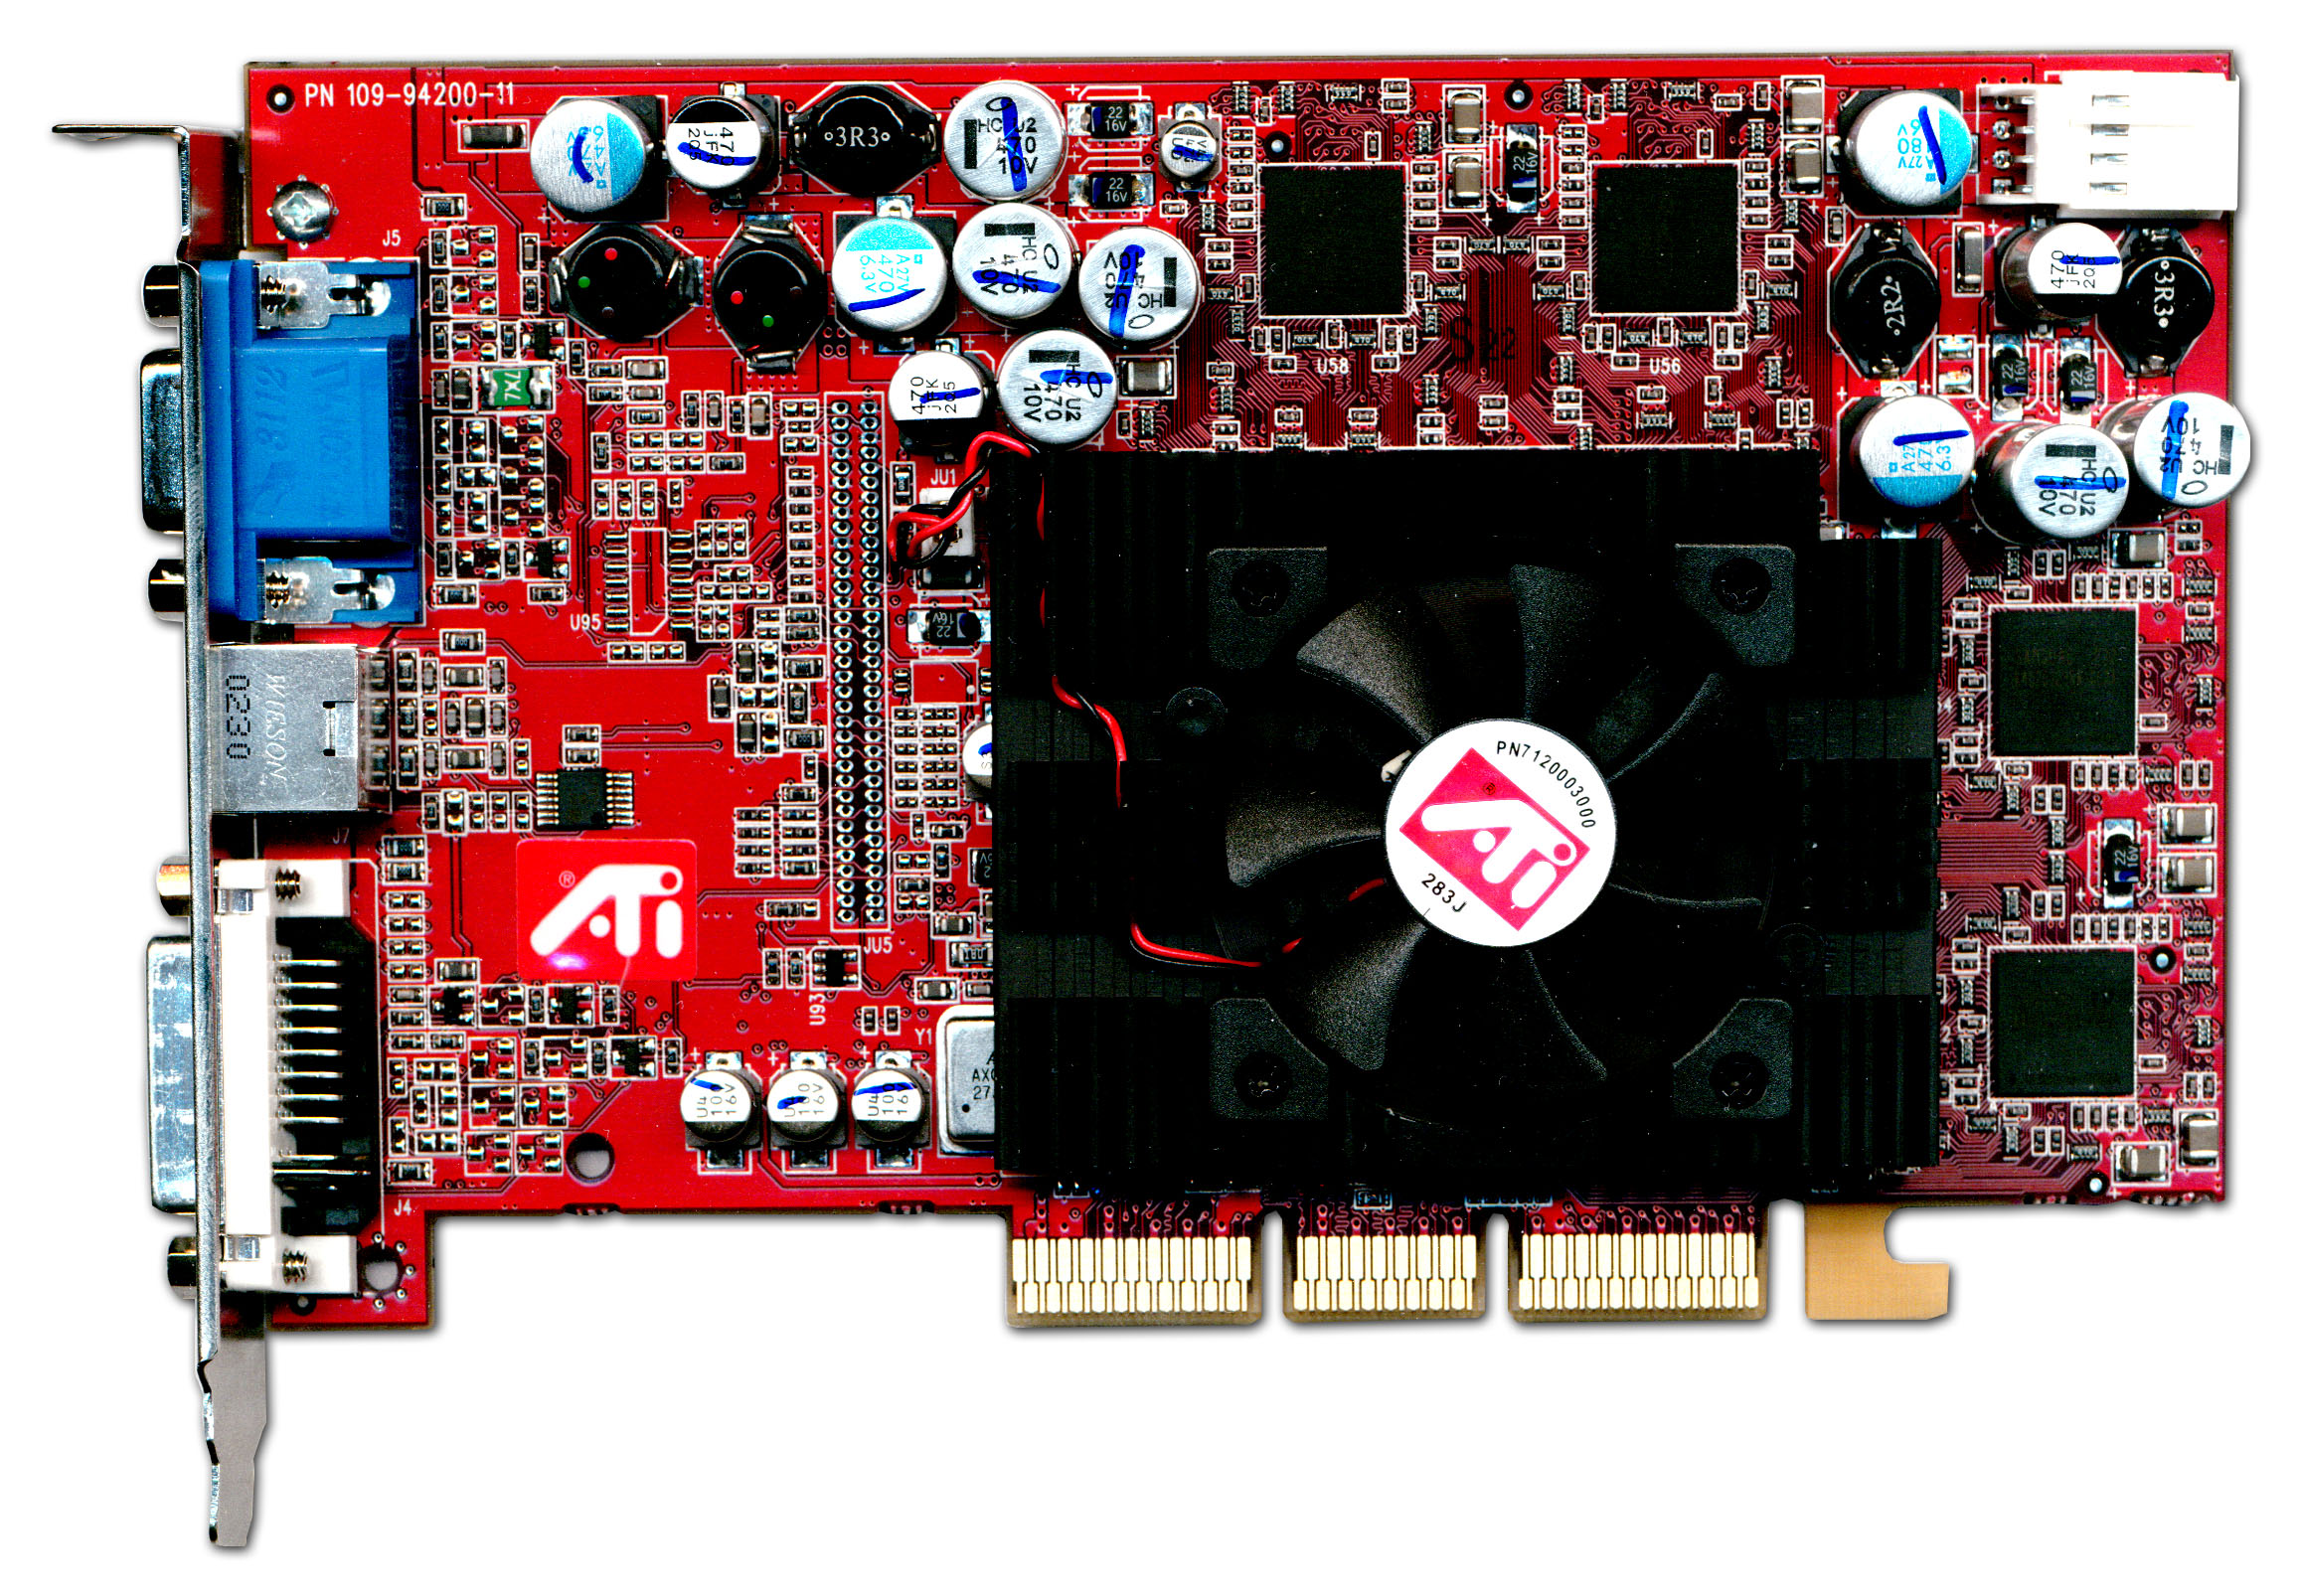 BIOSTAR ATI RADEON 9100 WINDOWS 7 64 DRIVER